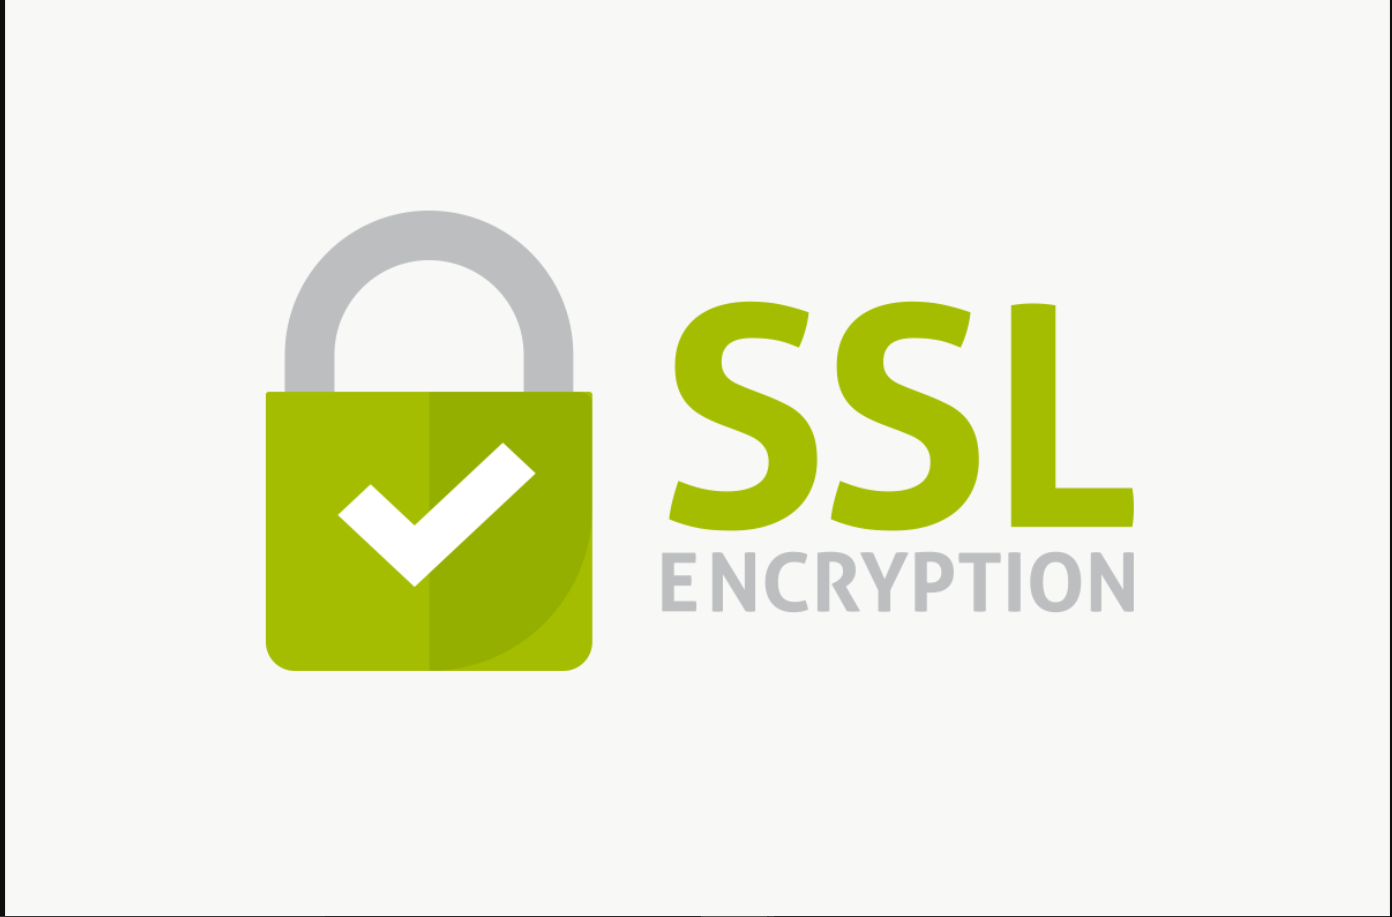 SSL certification for Wordpress site in 2 hours